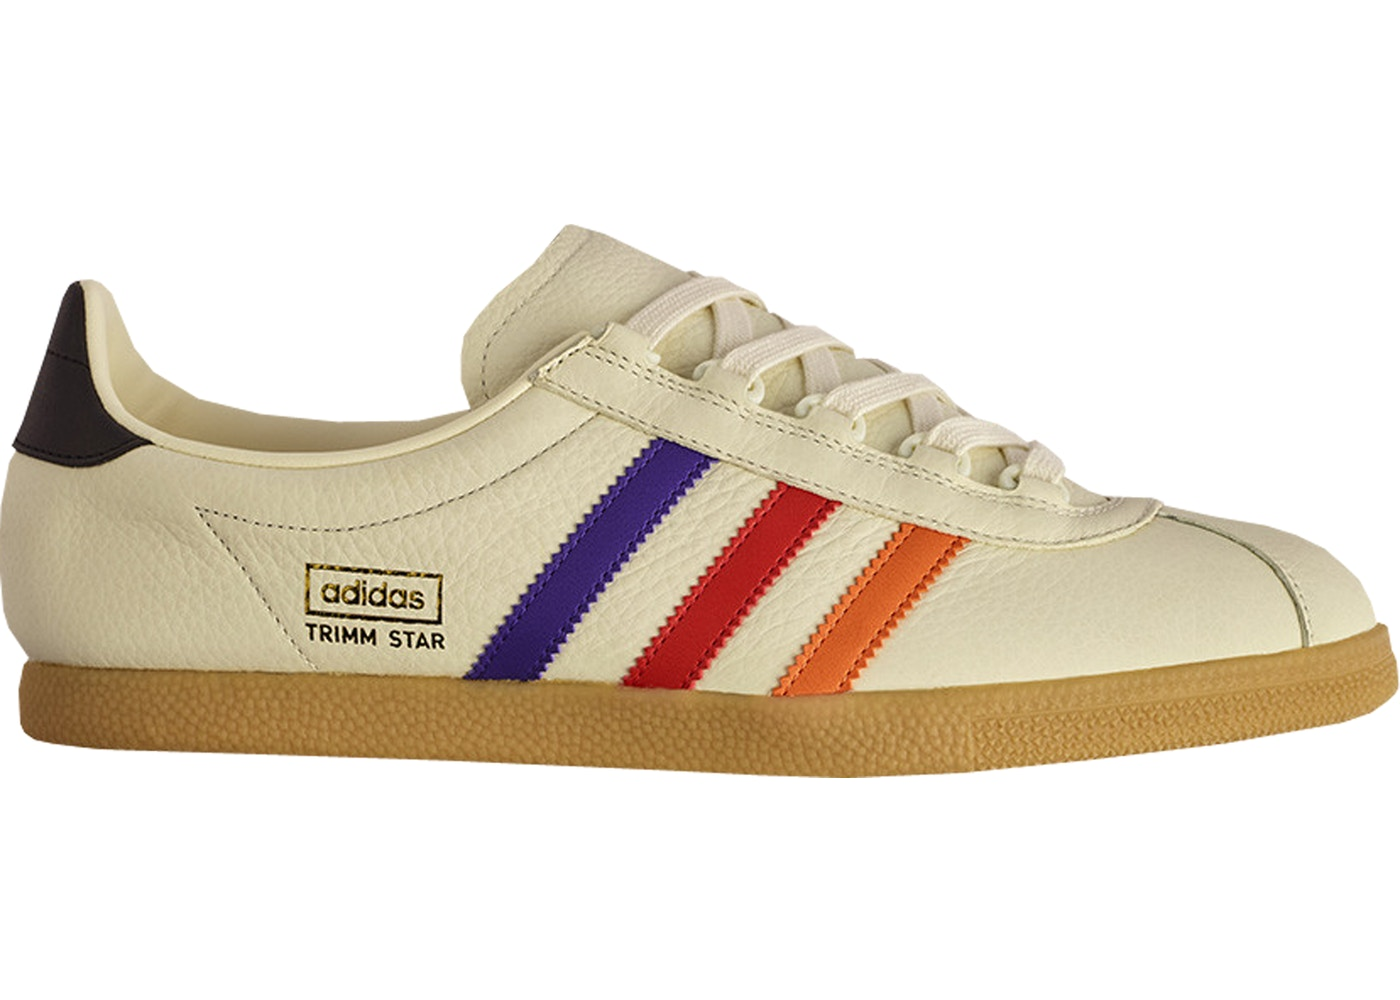 new product 99cd4 e8a90 adidas Trimm Star VHS Edition - Release dates changed again.